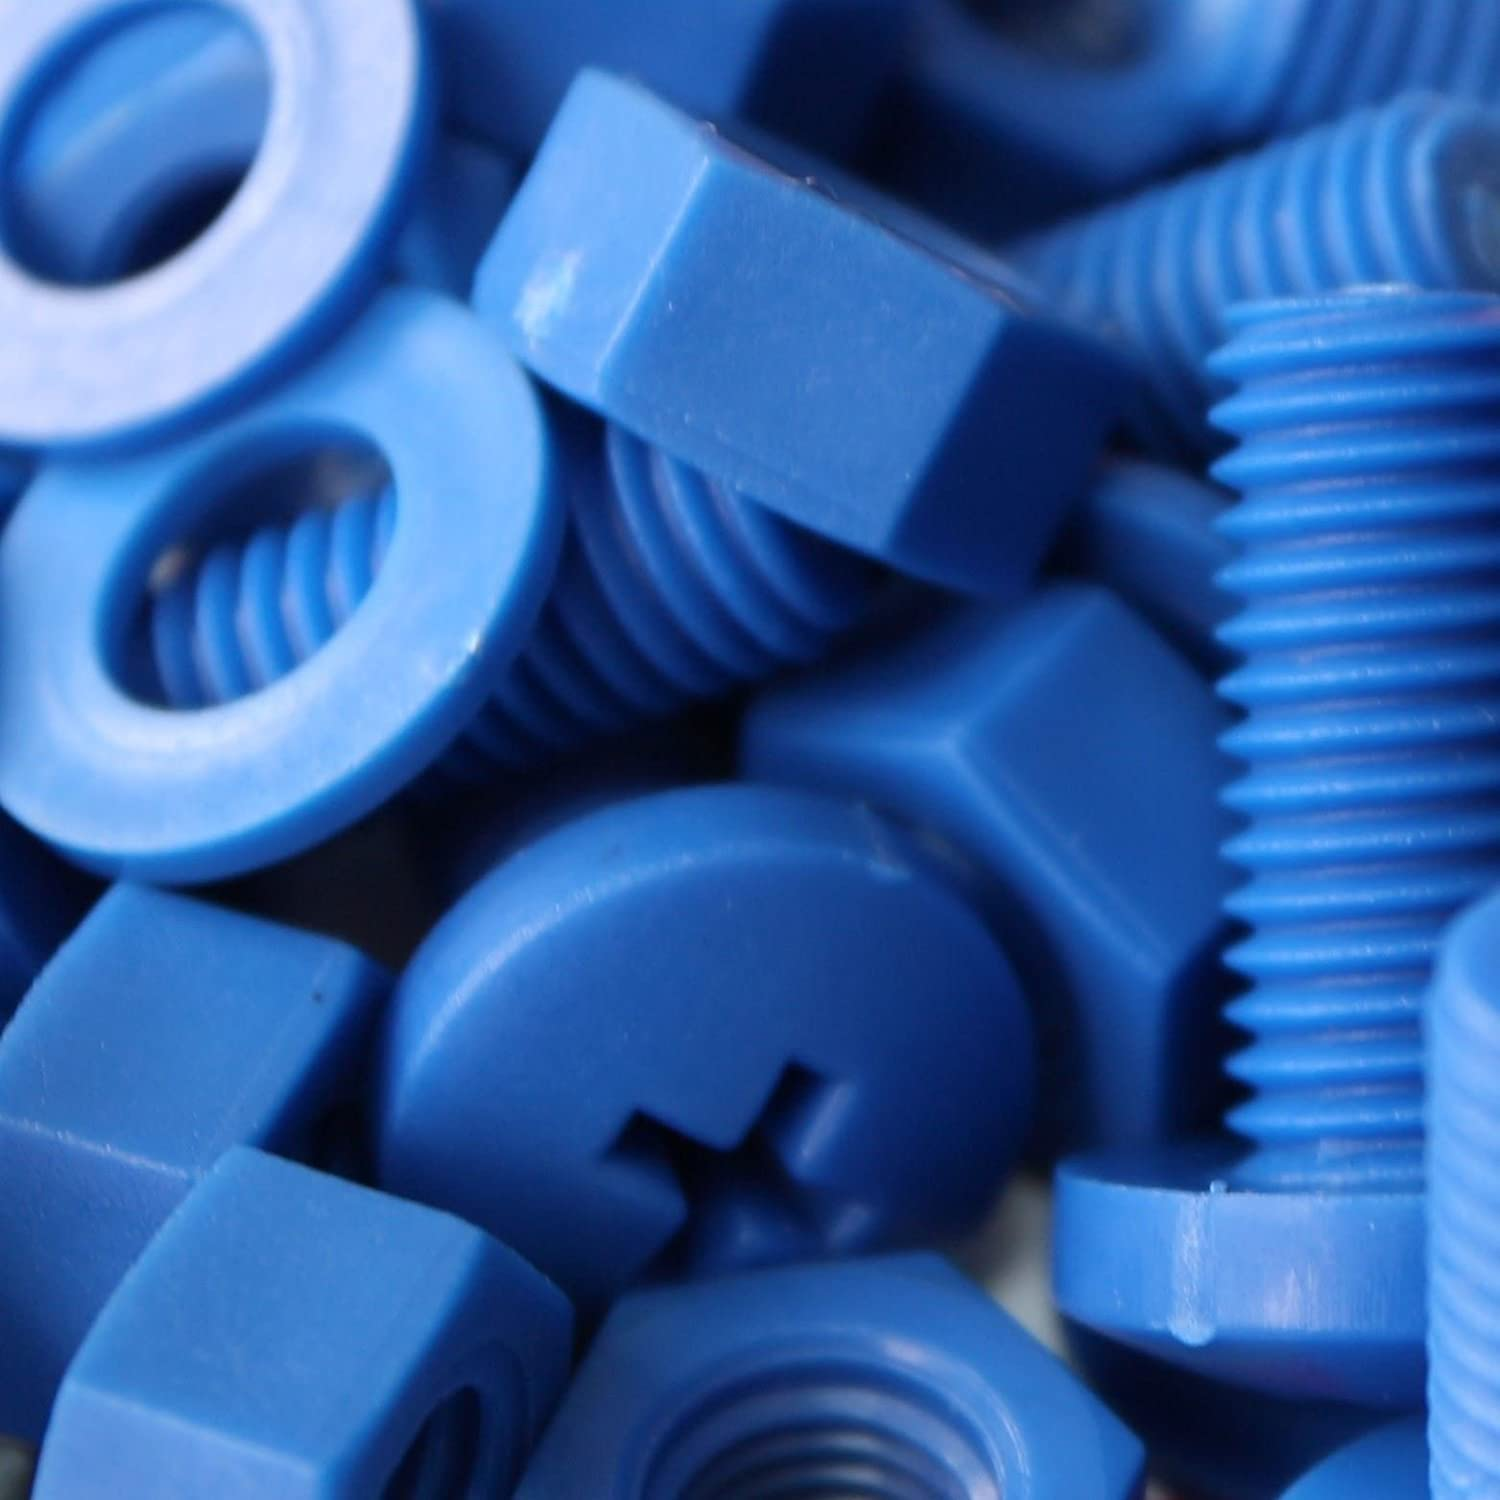 Anti-Corrosion M8 x 20mm Electrical Insulator Acrylic 5//16 x 25//32 Electrical Insulator 5//16 x 25//32 Caterpillar Red PP Plastic Nuts Bolts 20 x Blue Philips Pan Head Screws Polypropylene Washers Chemical Resistant Water Resistant